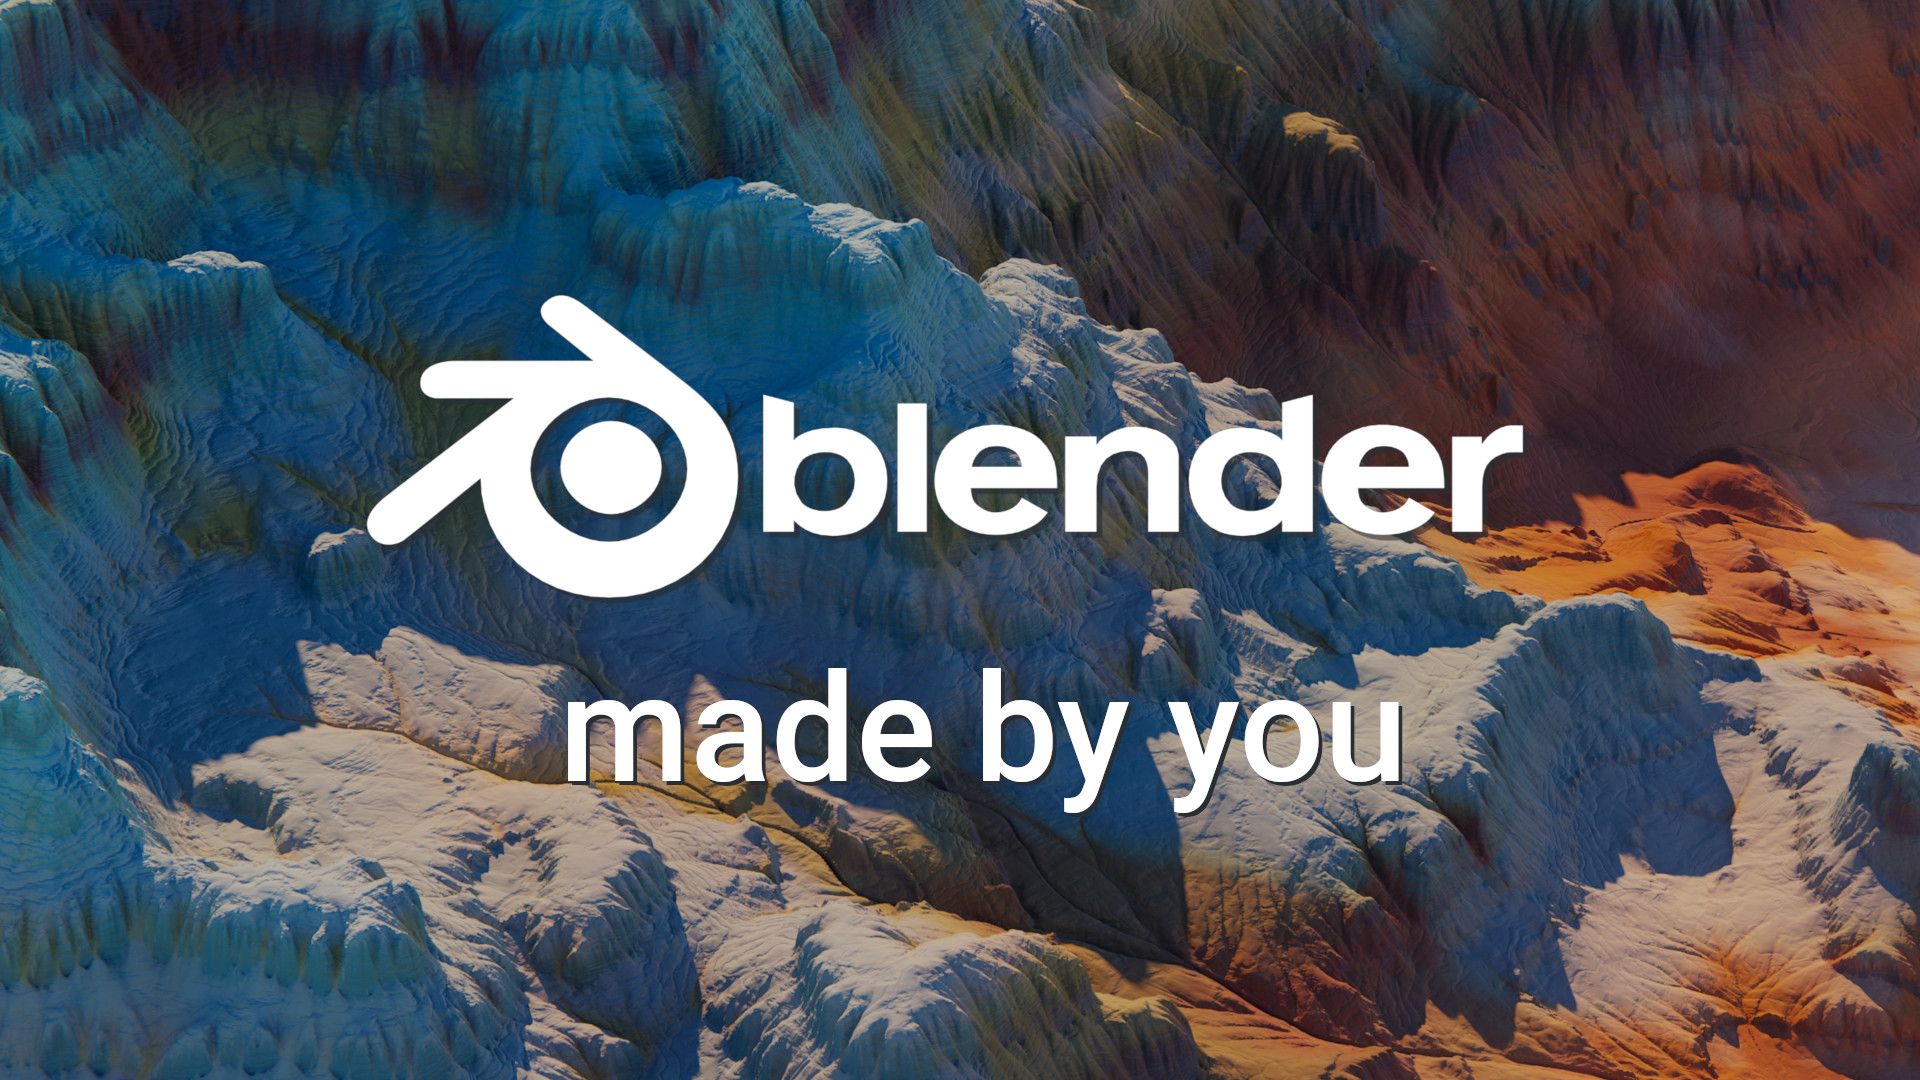 Blender, made by you